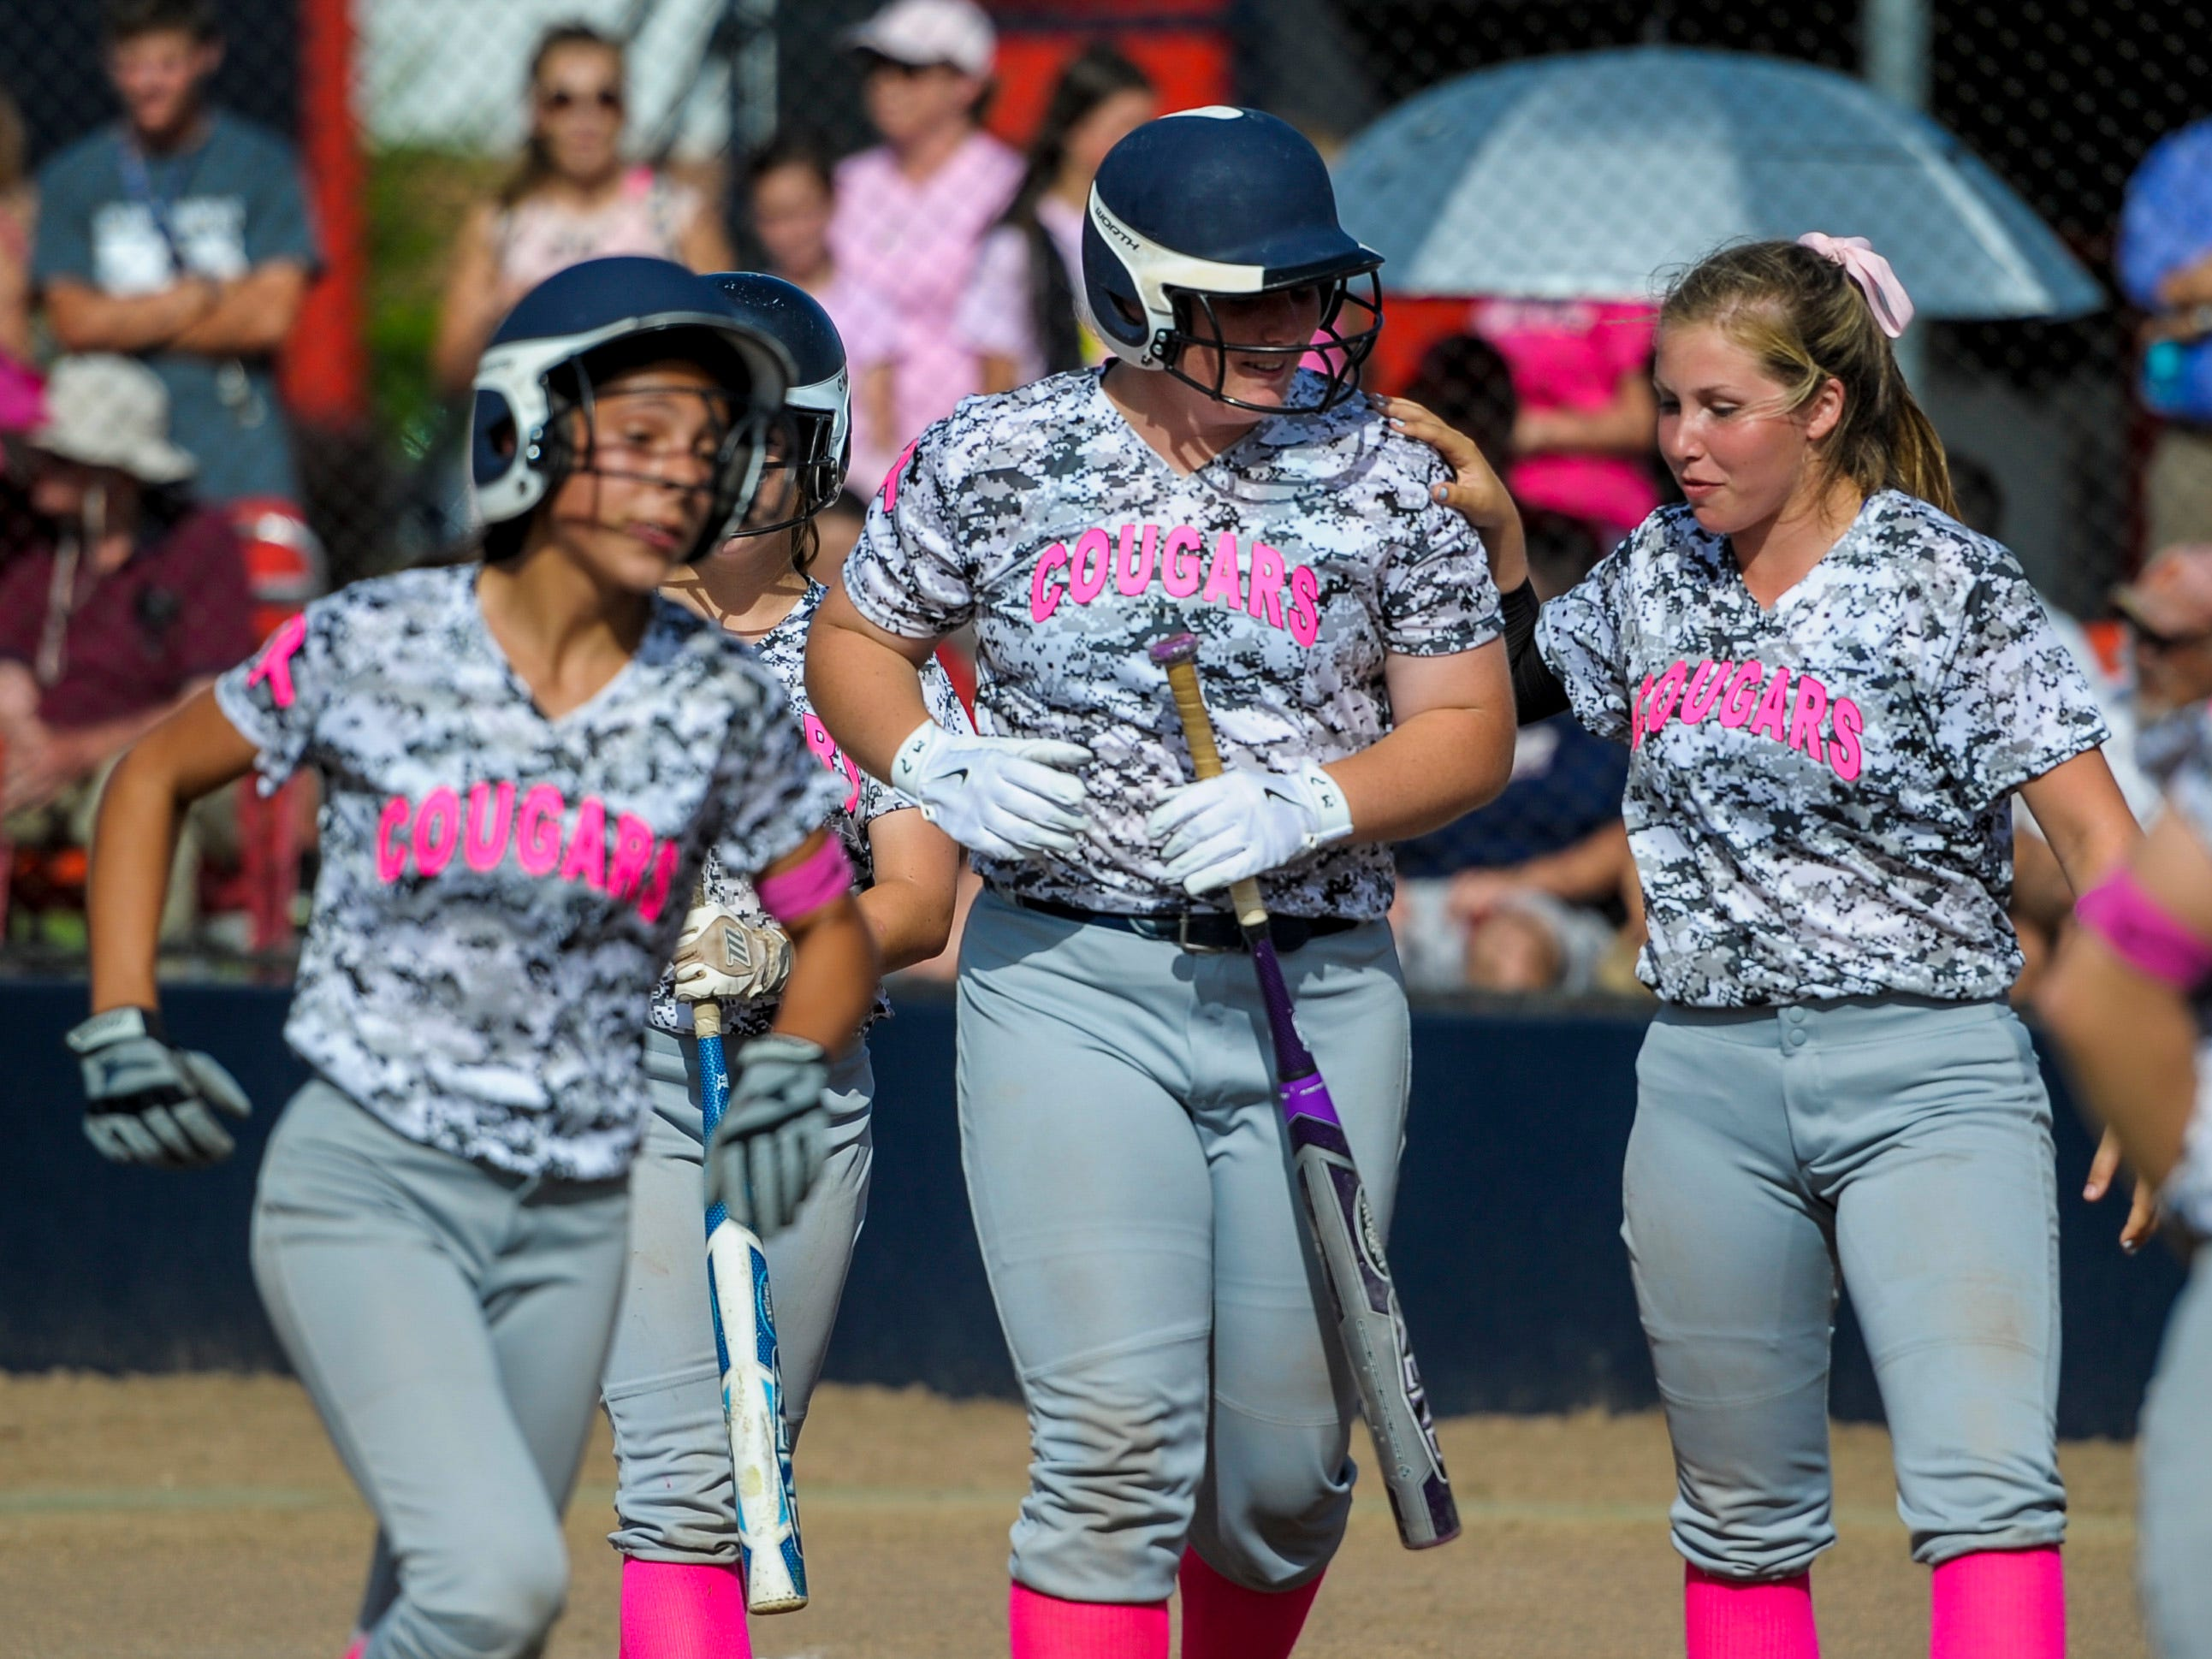 St. Thomas More catcher Bailey Hemphill (16) celebrates with teammates after hitting a two-run home run during the third inning Wednesday at Teurlings Catholic.